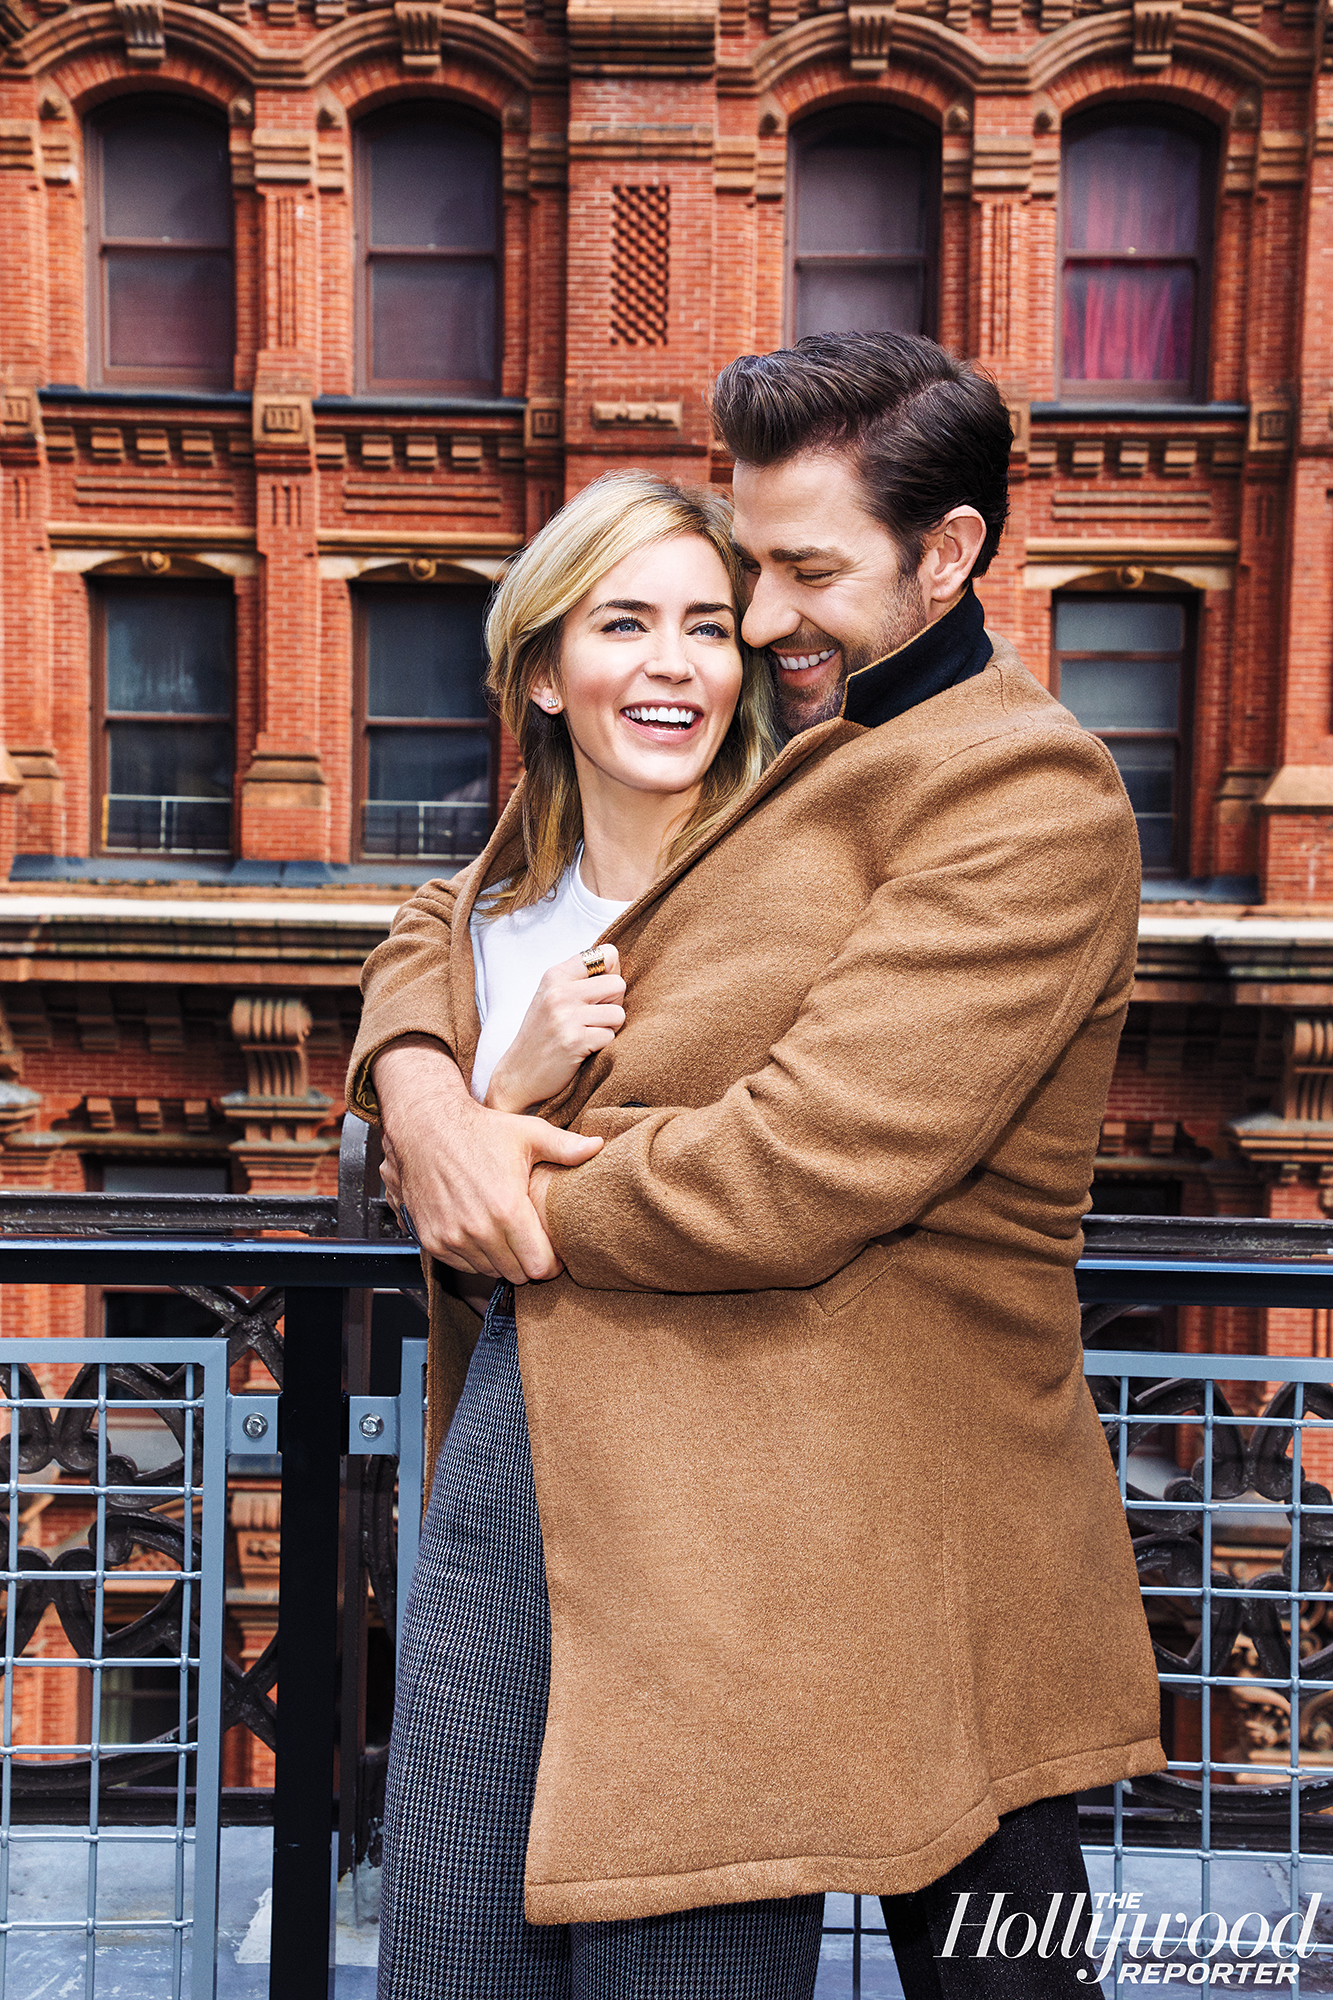 """John Krasinski Emily Blunt First Date Hollywood Reporter Rulebreakers - """"Neither of them has a jealous bone in their body,"""" Blunt's Mary Poppins director Rob Marshall dished. """"People think marriage is looking deep into each other's eyes. No, it's looking out and seeing the same life. Emily and John see the same life."""""""